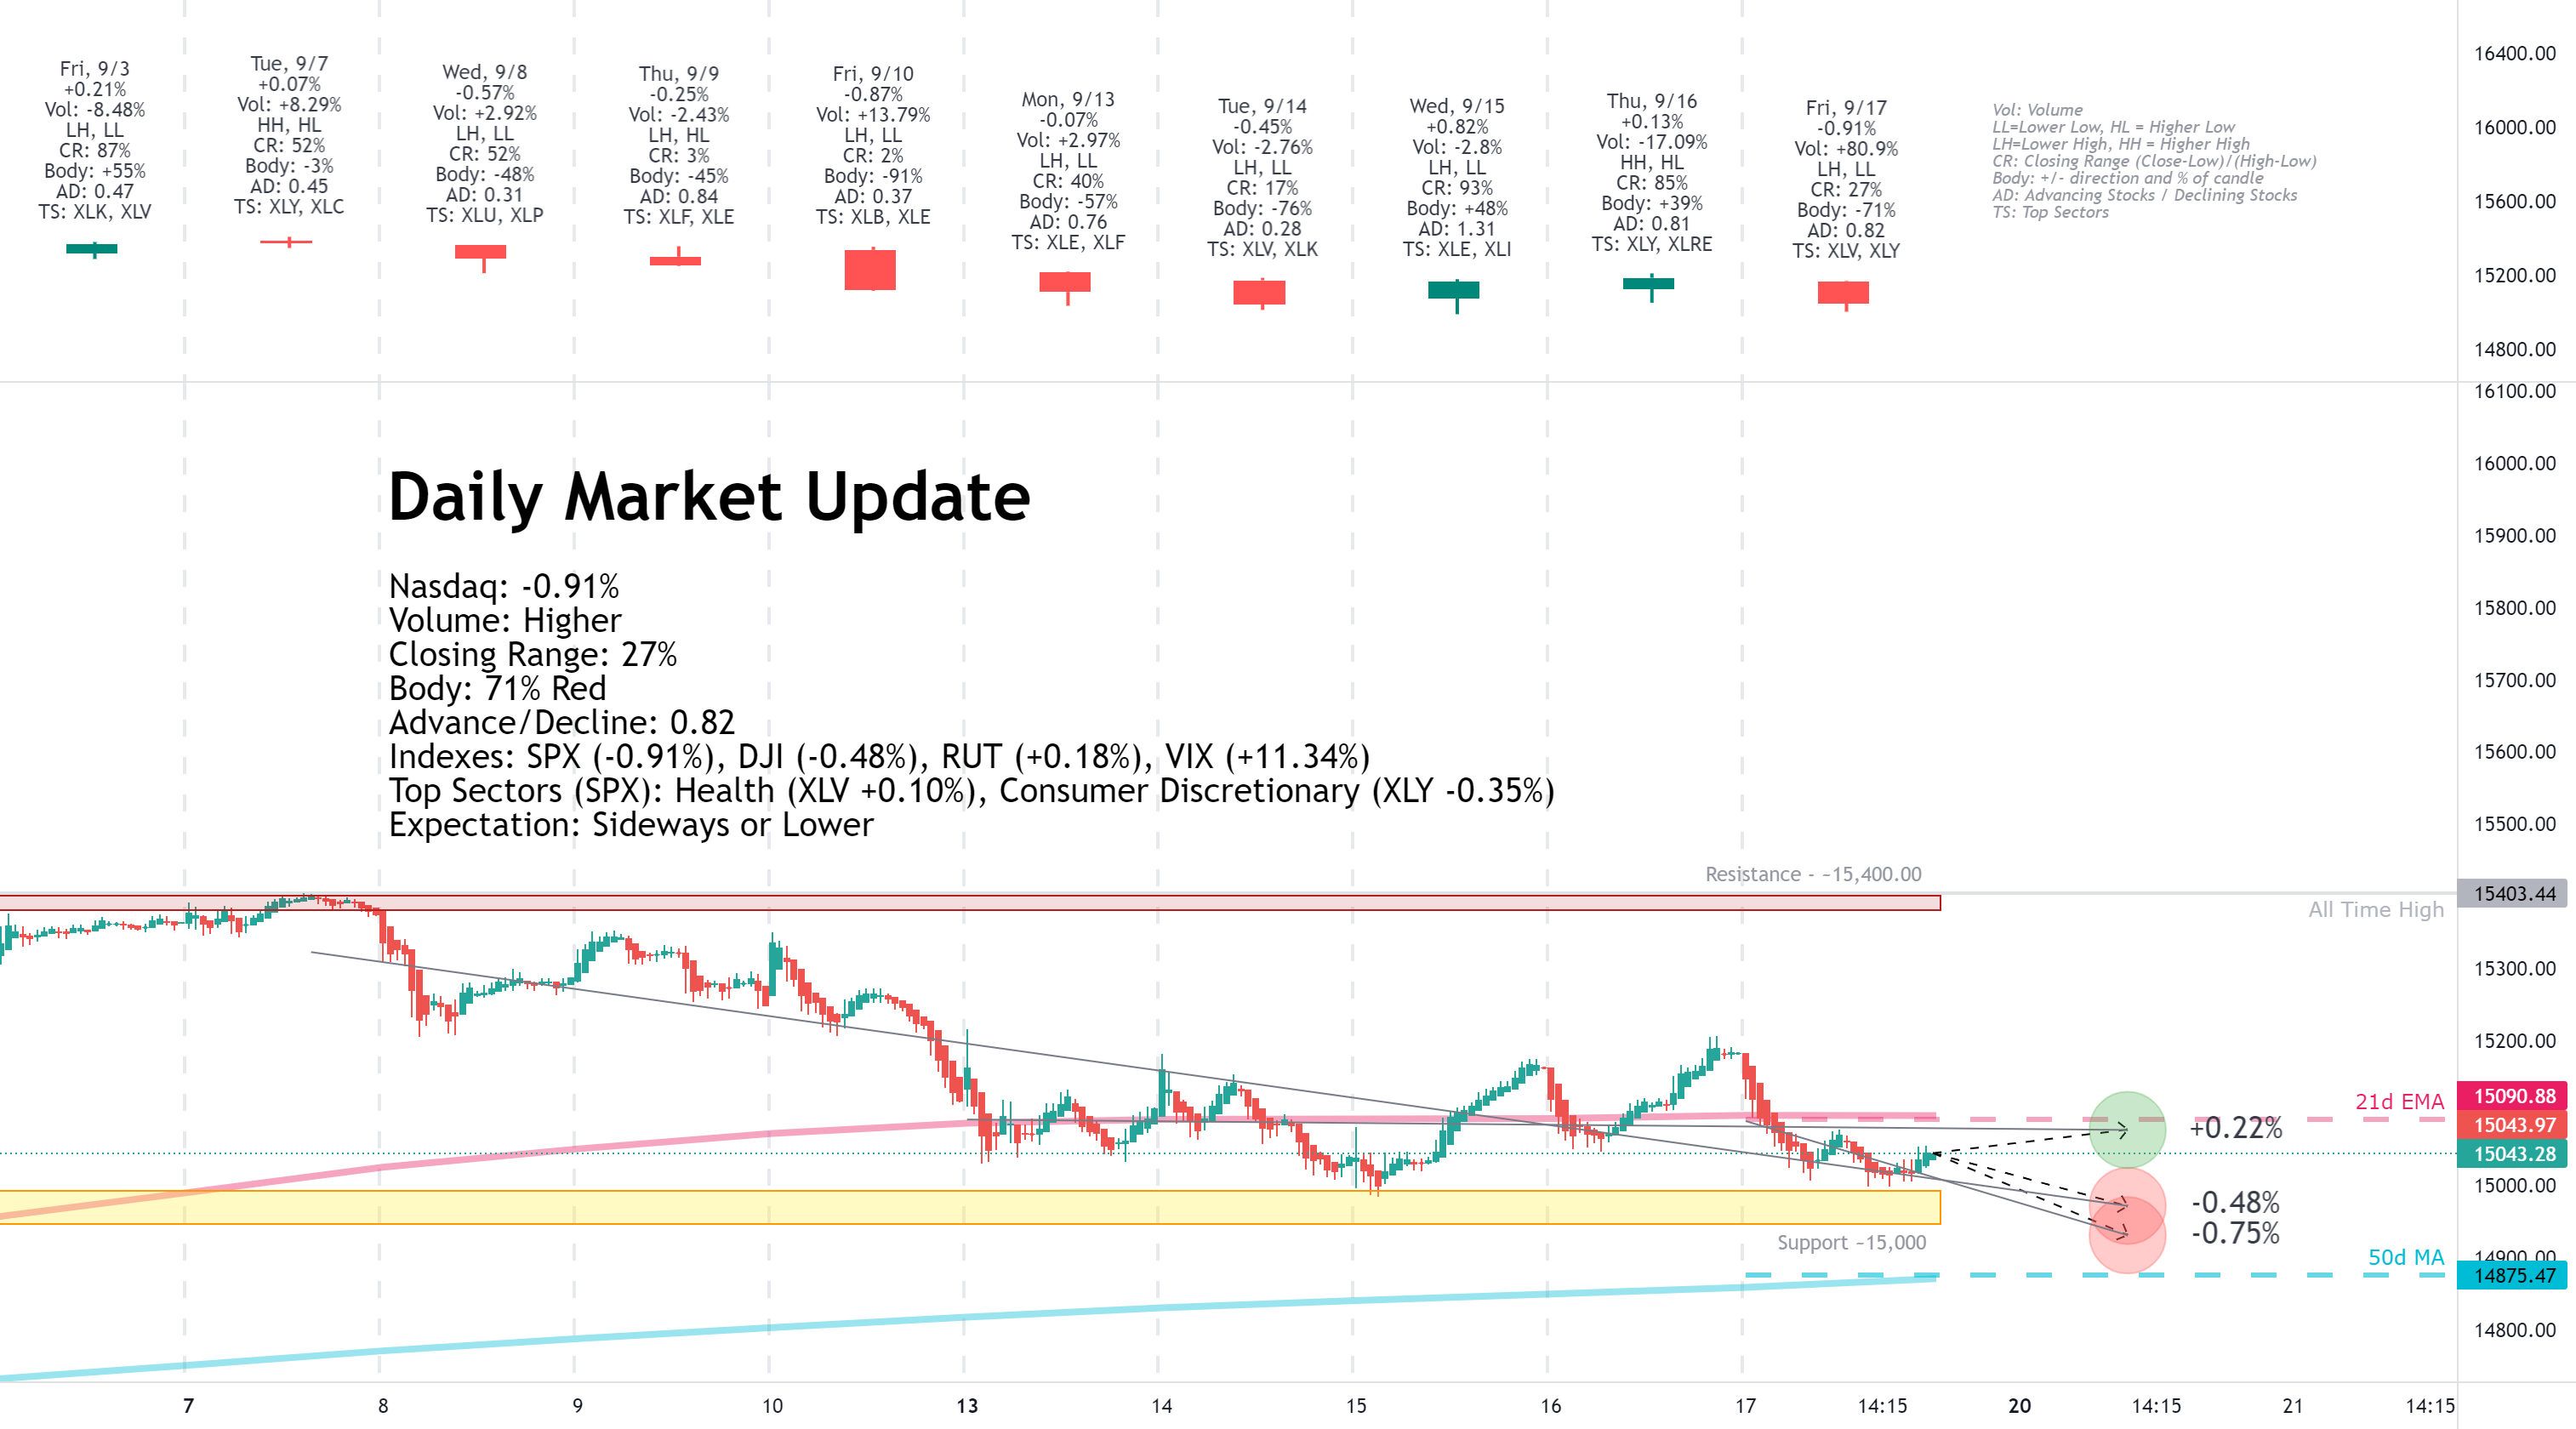 Daily Market Update for 9/17